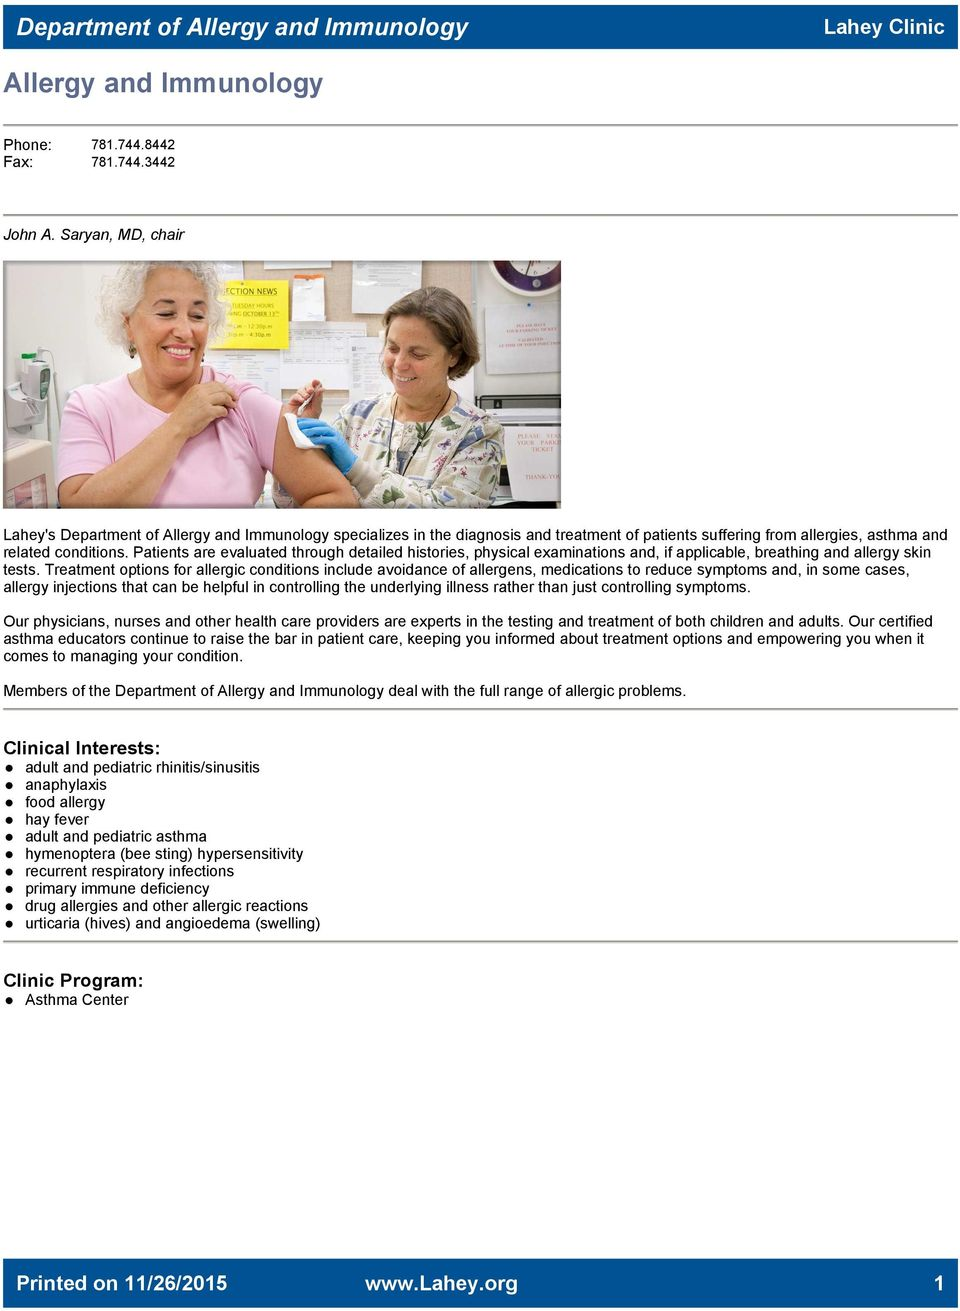 A Guide to Multispecialty Care at Lahey Clinic  DIRECTORY OF